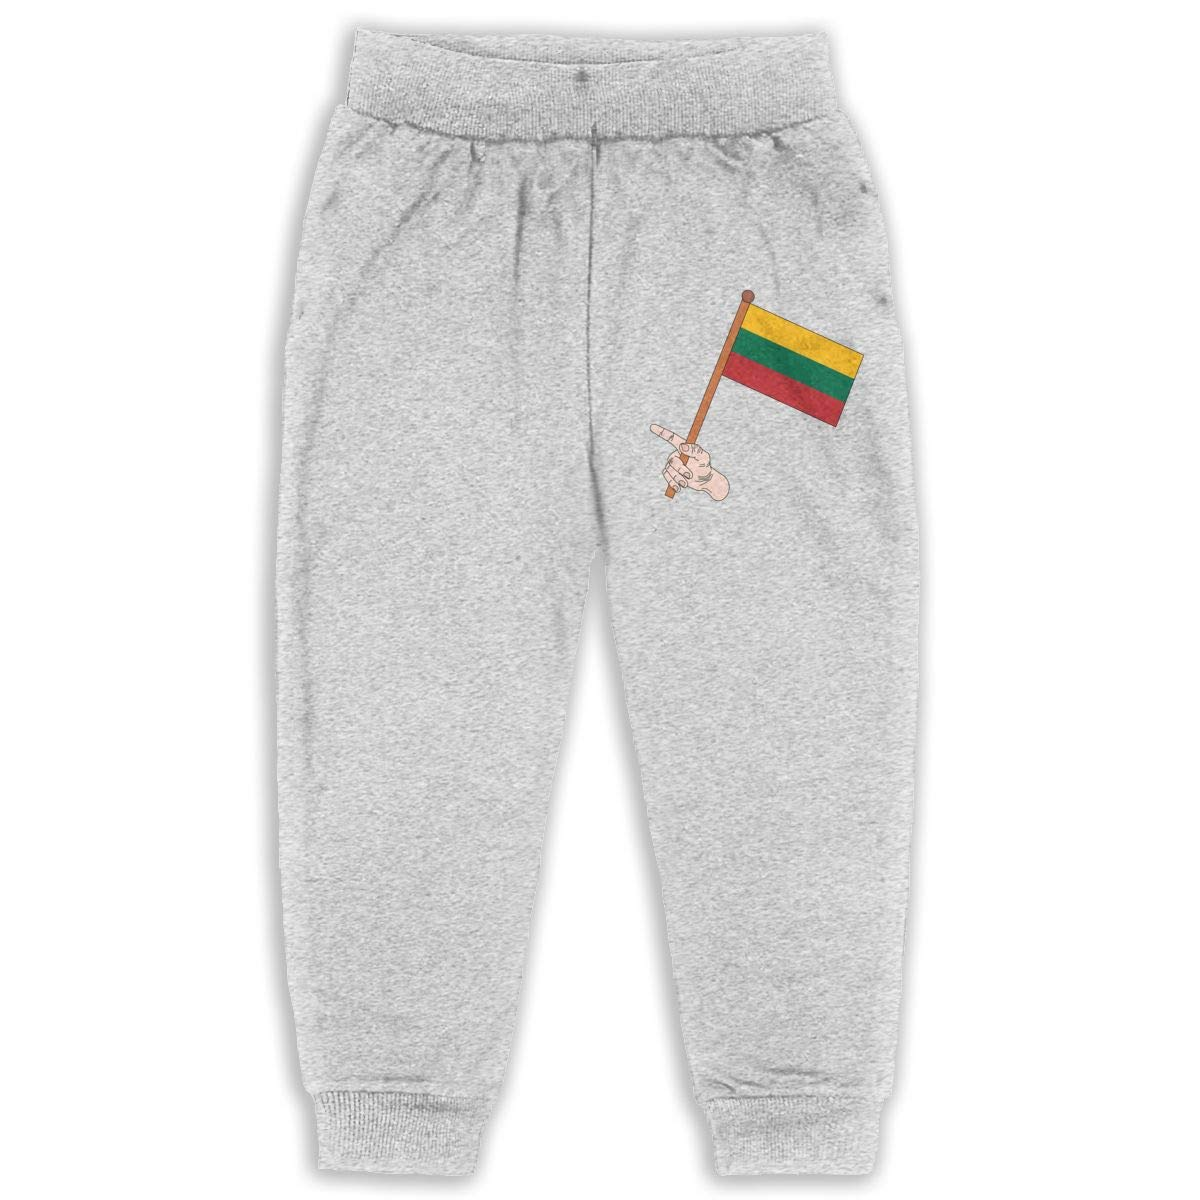 DaXi1 Flag Sweatpants for Boys /& Girls Fleece Active Joggers Elastic Pants